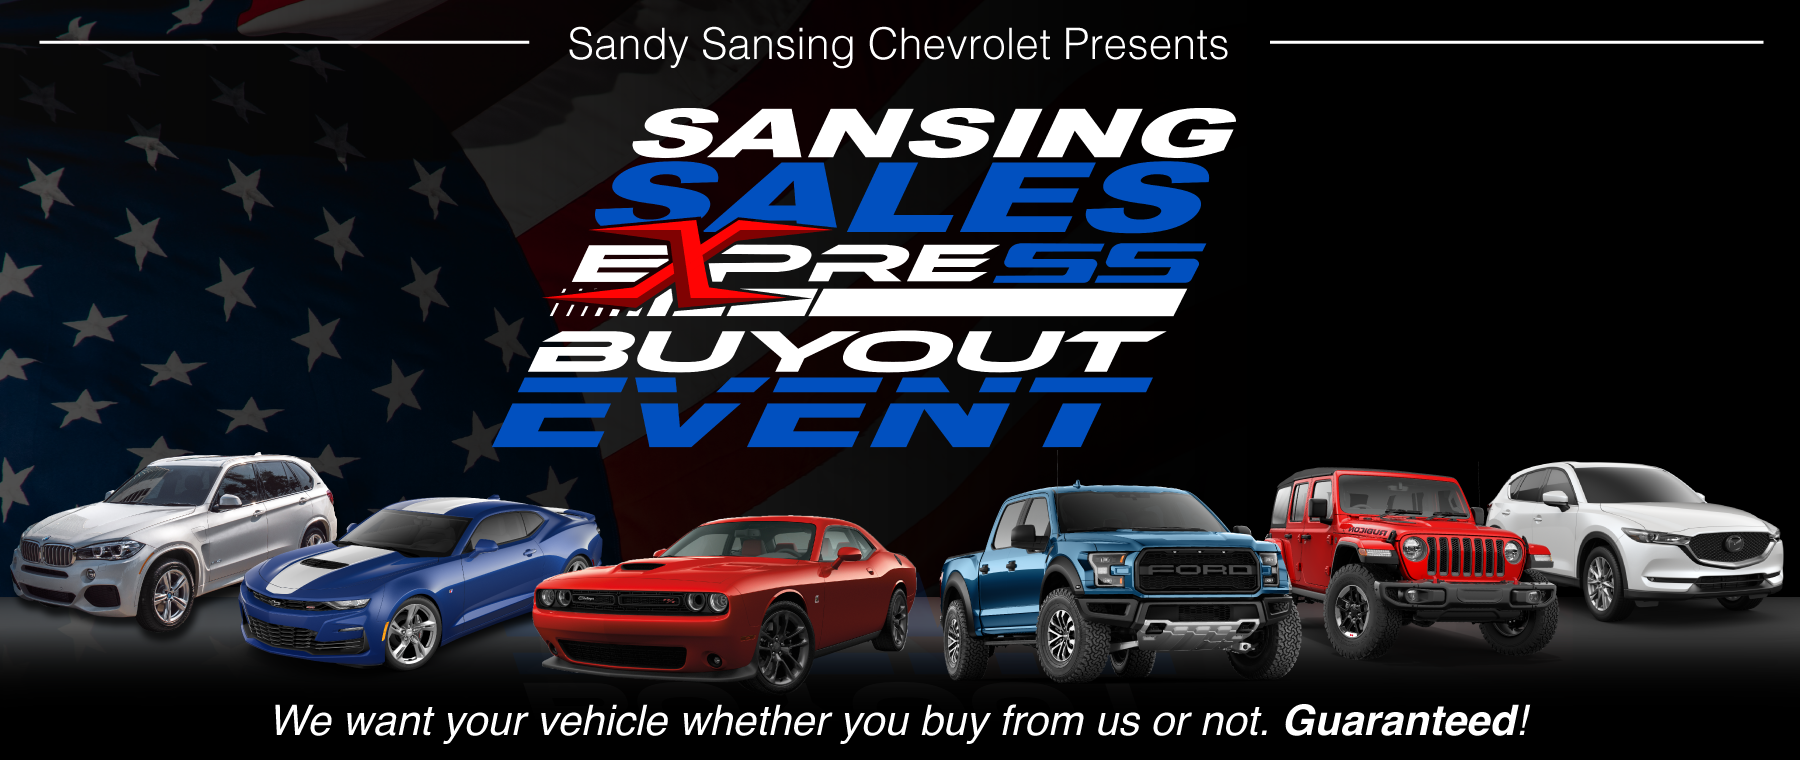 SSX-Website-Carousel-Banners-Dealerships_Website-Carousel-Graphic-ChevyPen